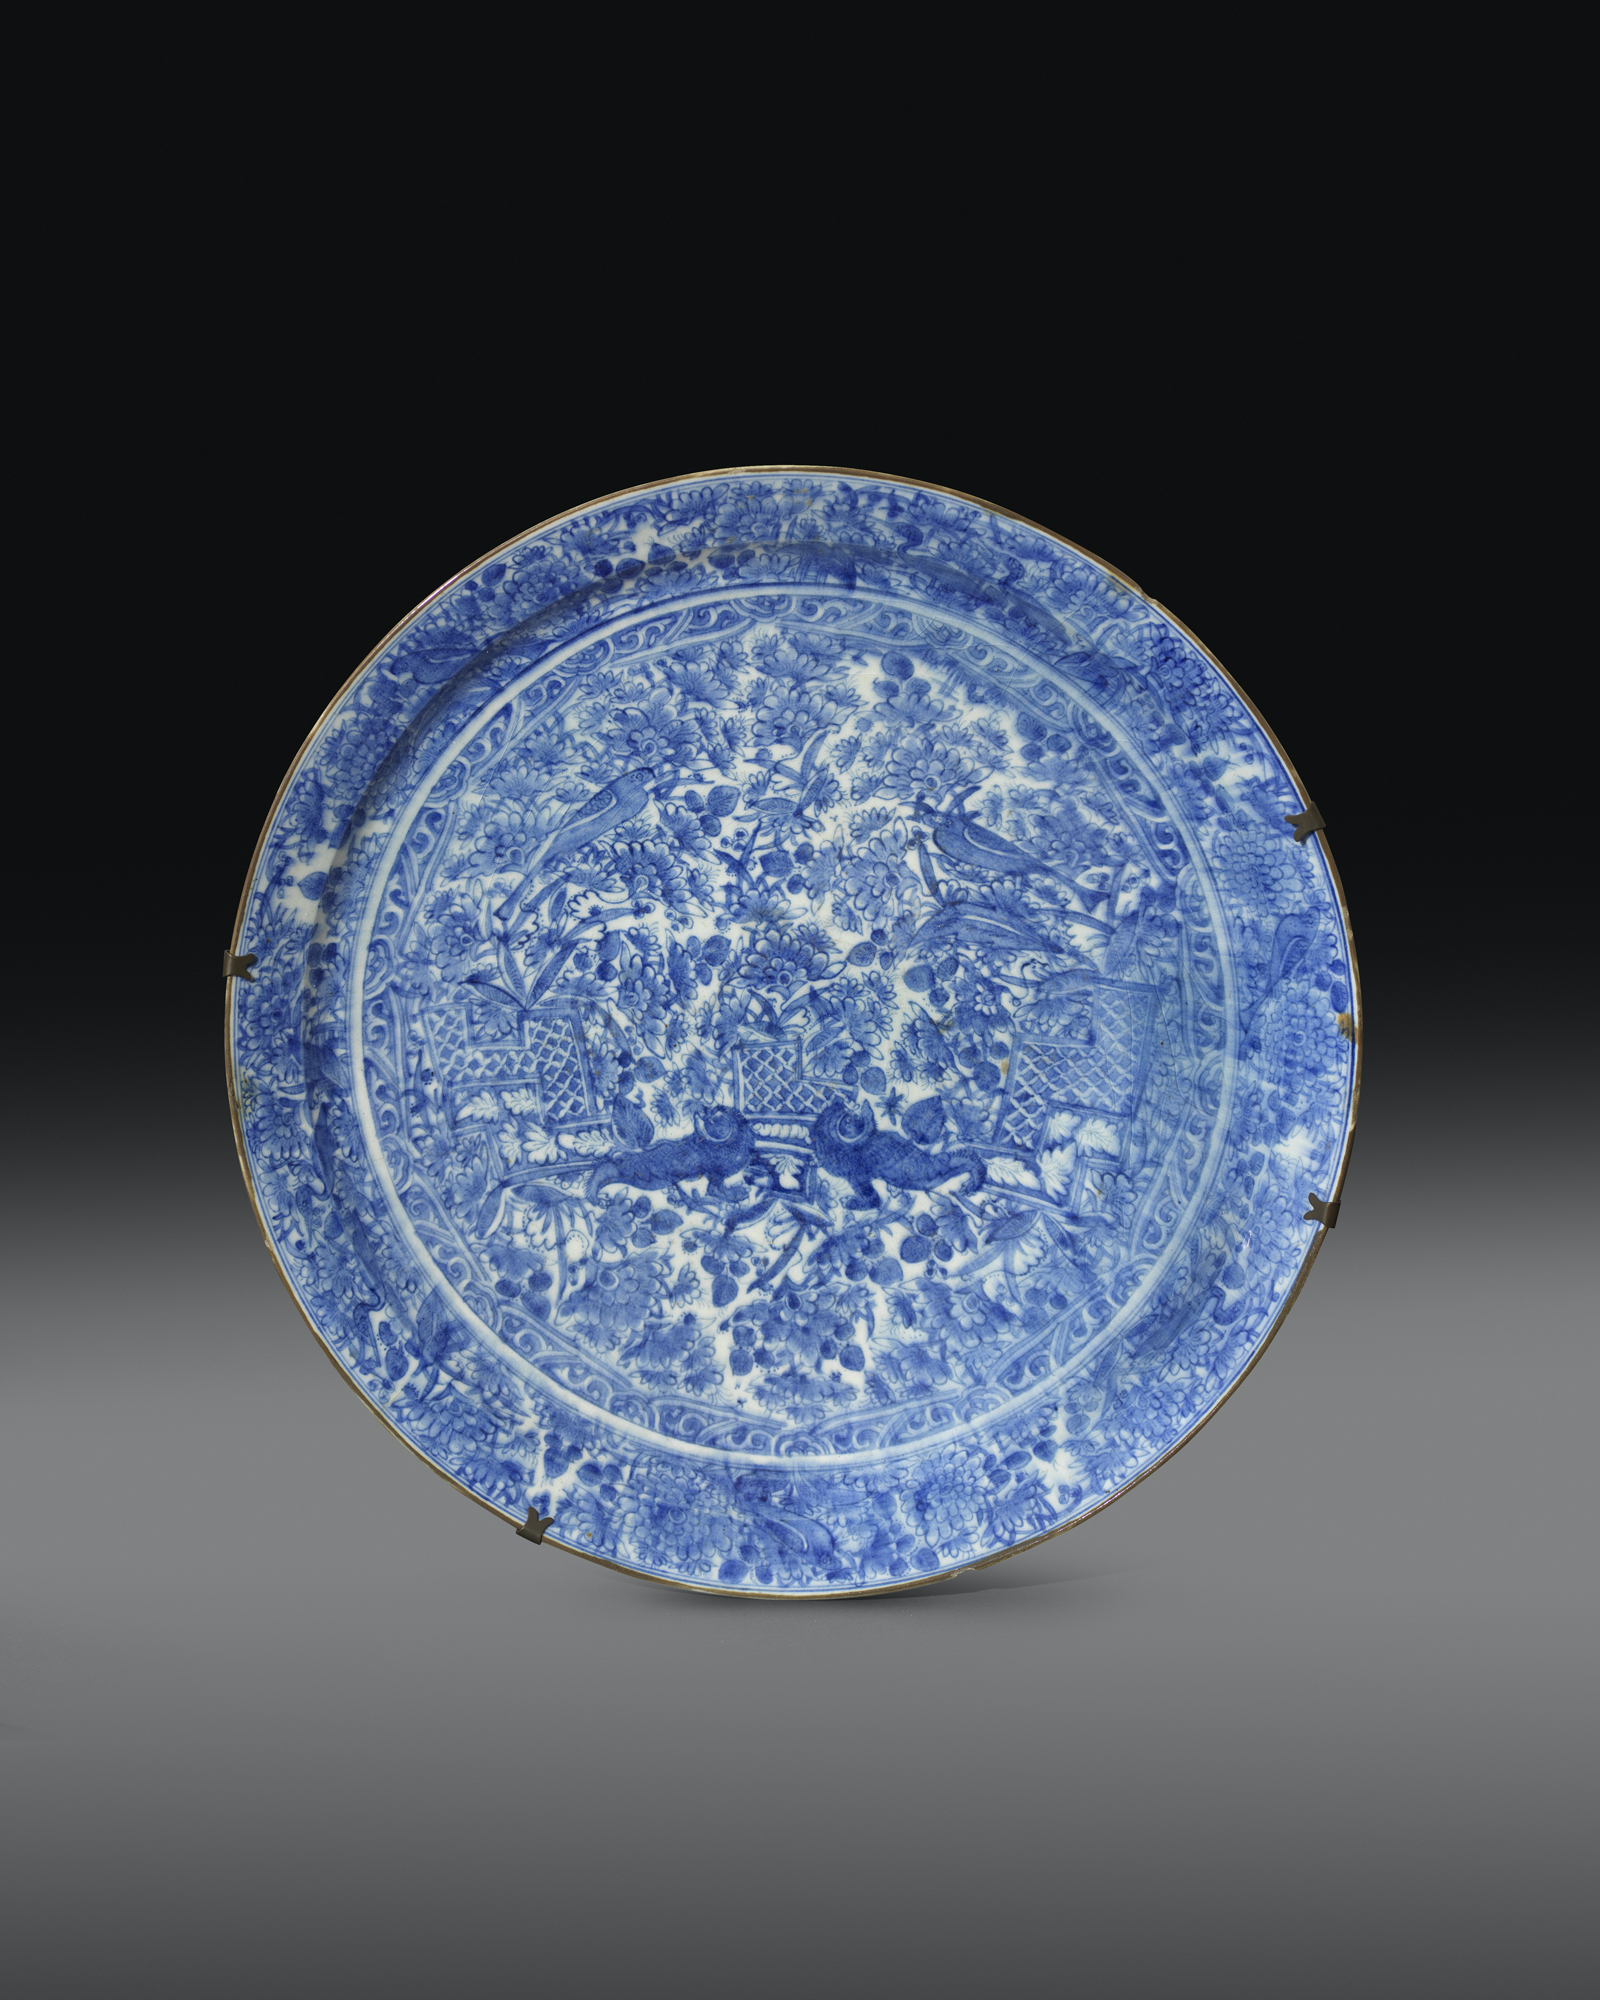 FORGE & LYNCH A large Safavid blue and white pottery dish Persia, late seventeenth century 53.8 cm. diameter; 10.6 cm. height